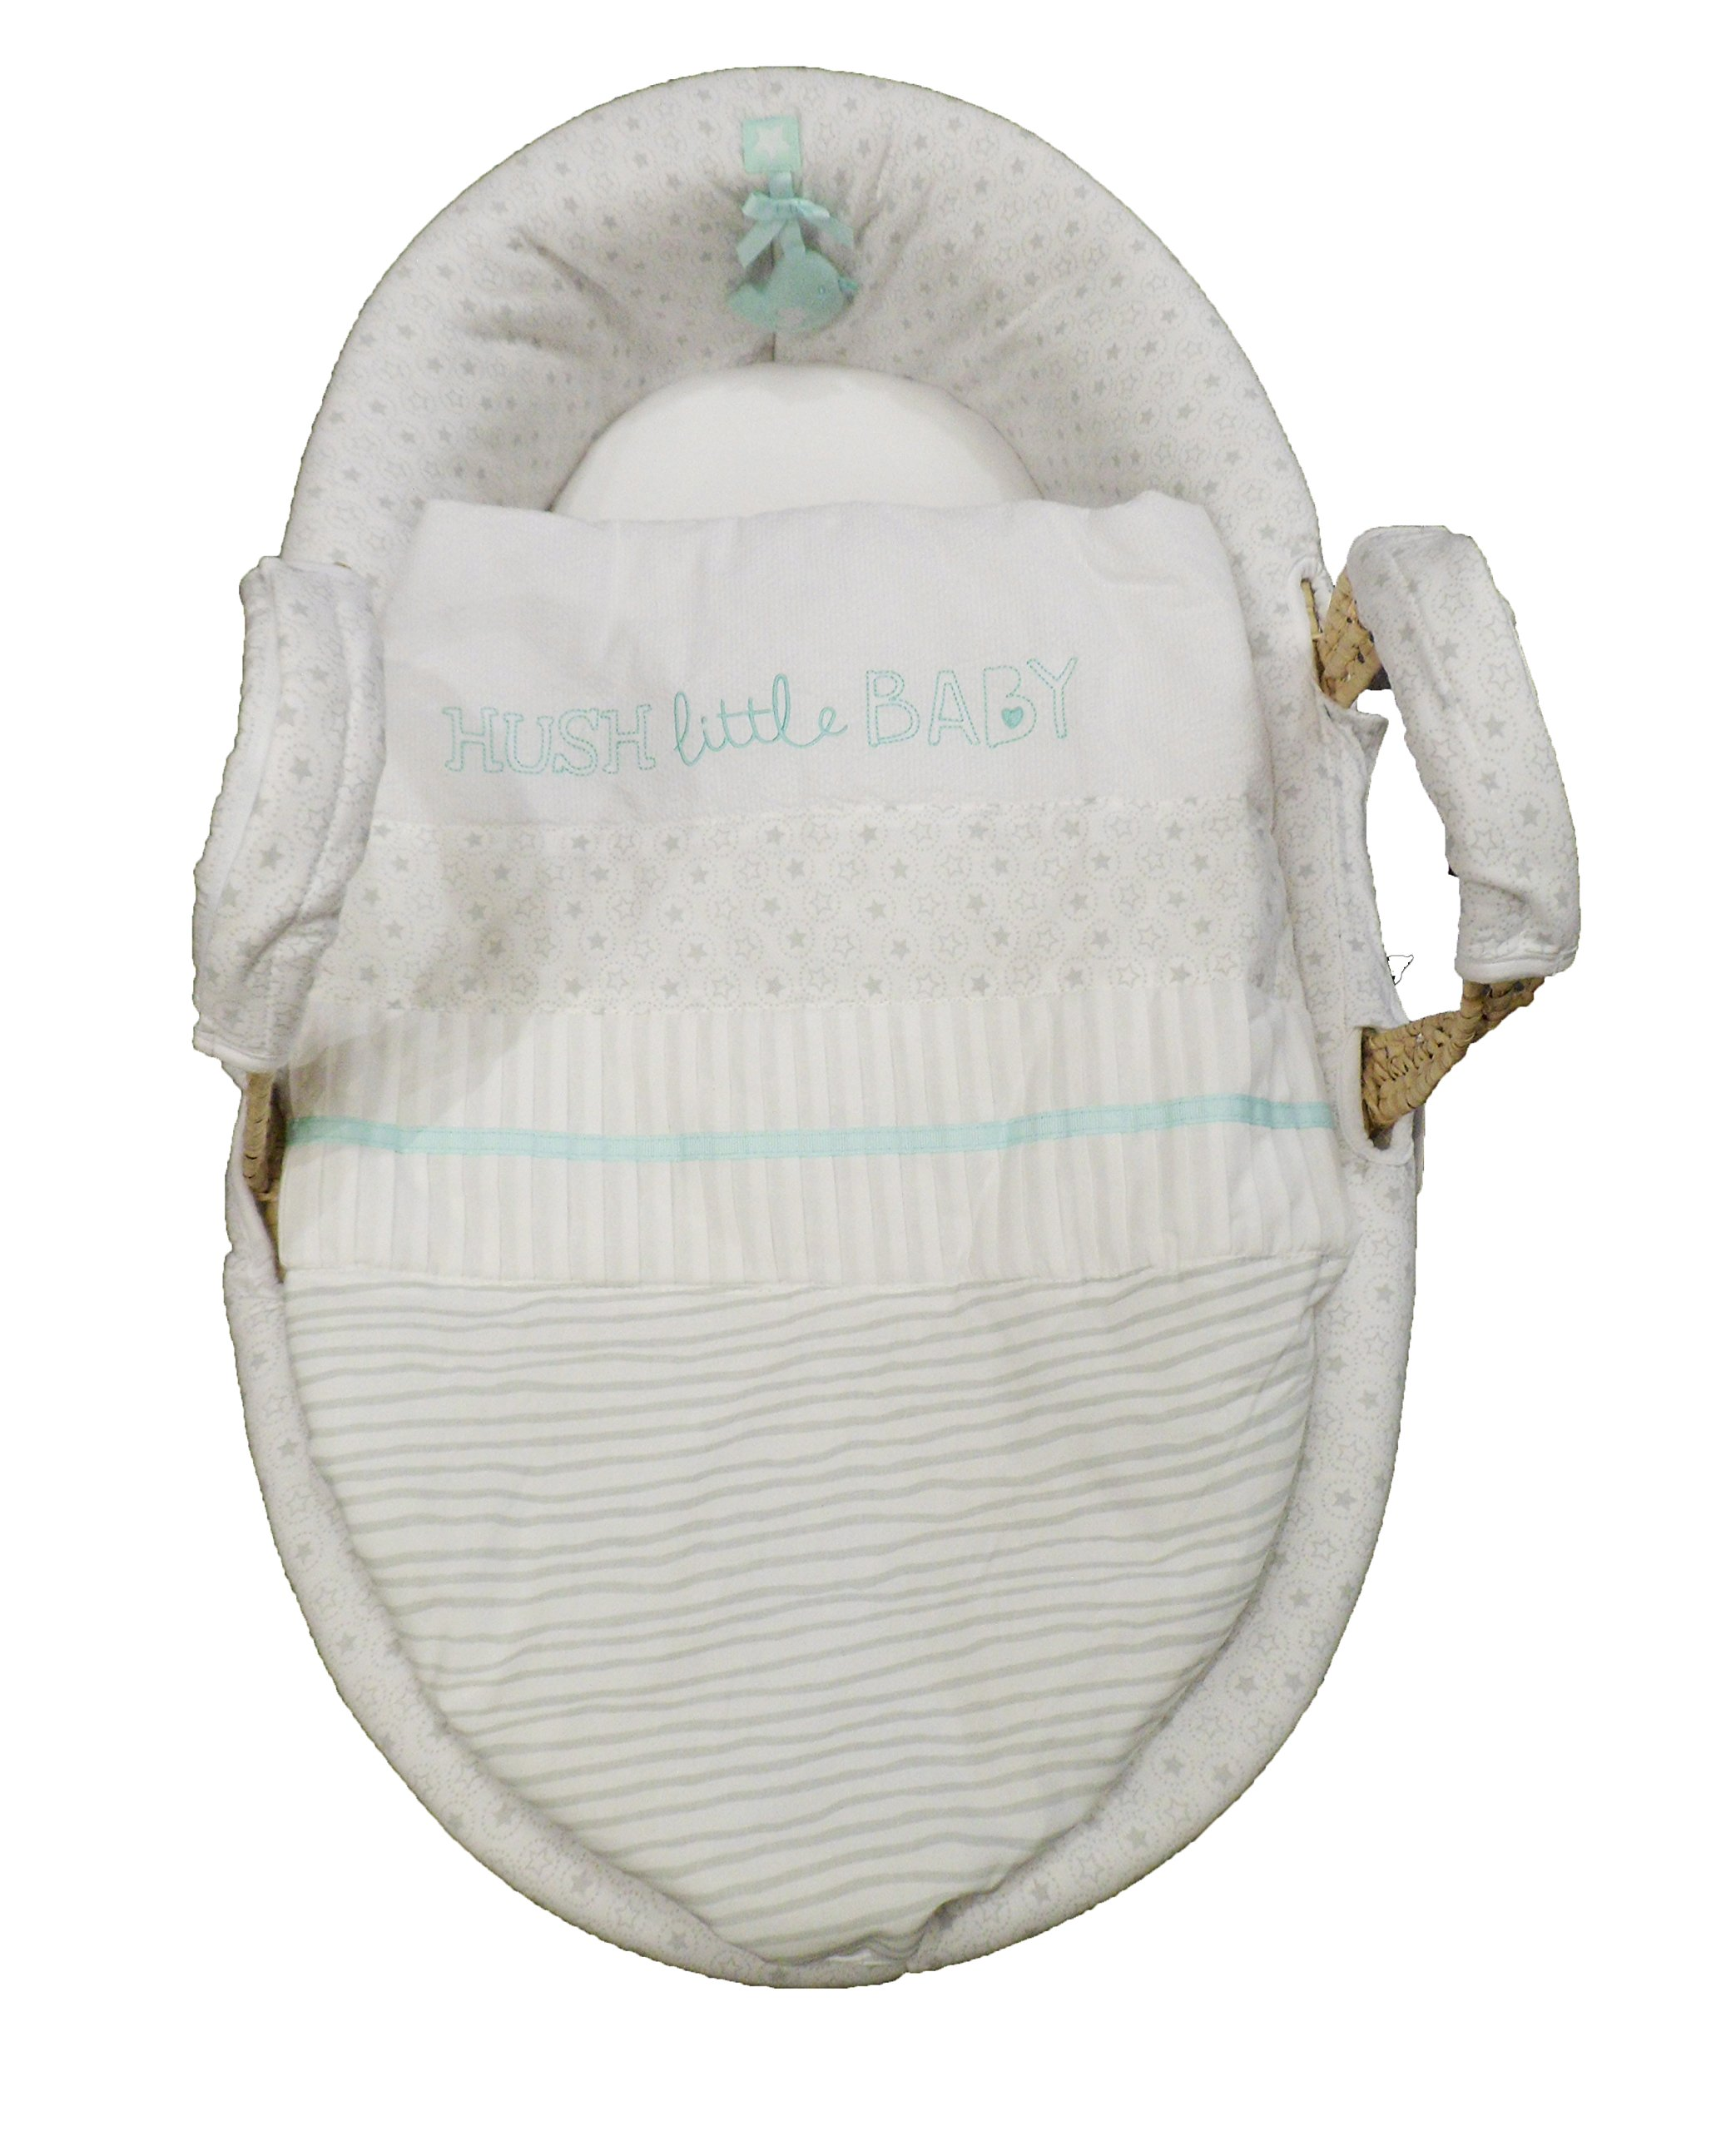 Natures Purest Hush Little Baby Palm Moses Basket  Dressed on a palm Moses basket, base measurement 70cm Padded dressing for added comfort Dressings are machine washable 1